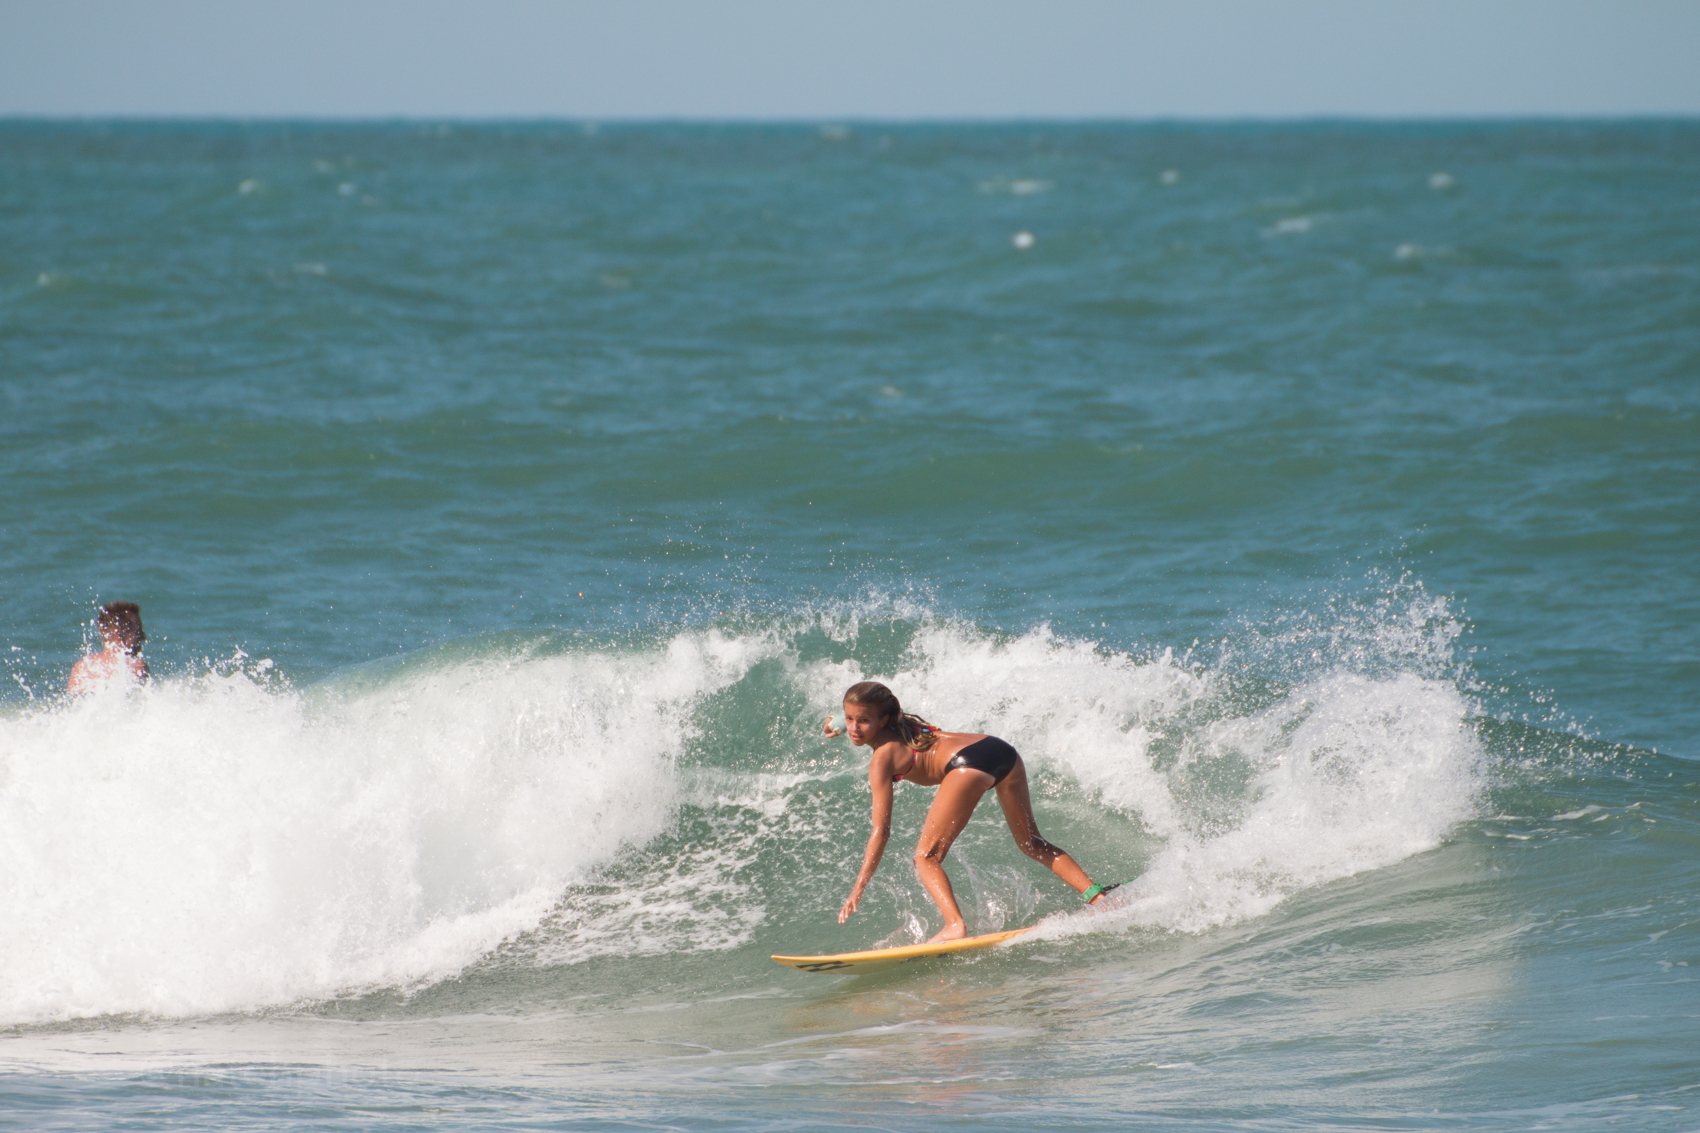 Zoe surfing sebastian inlet, photo by Nathaniel Harrington